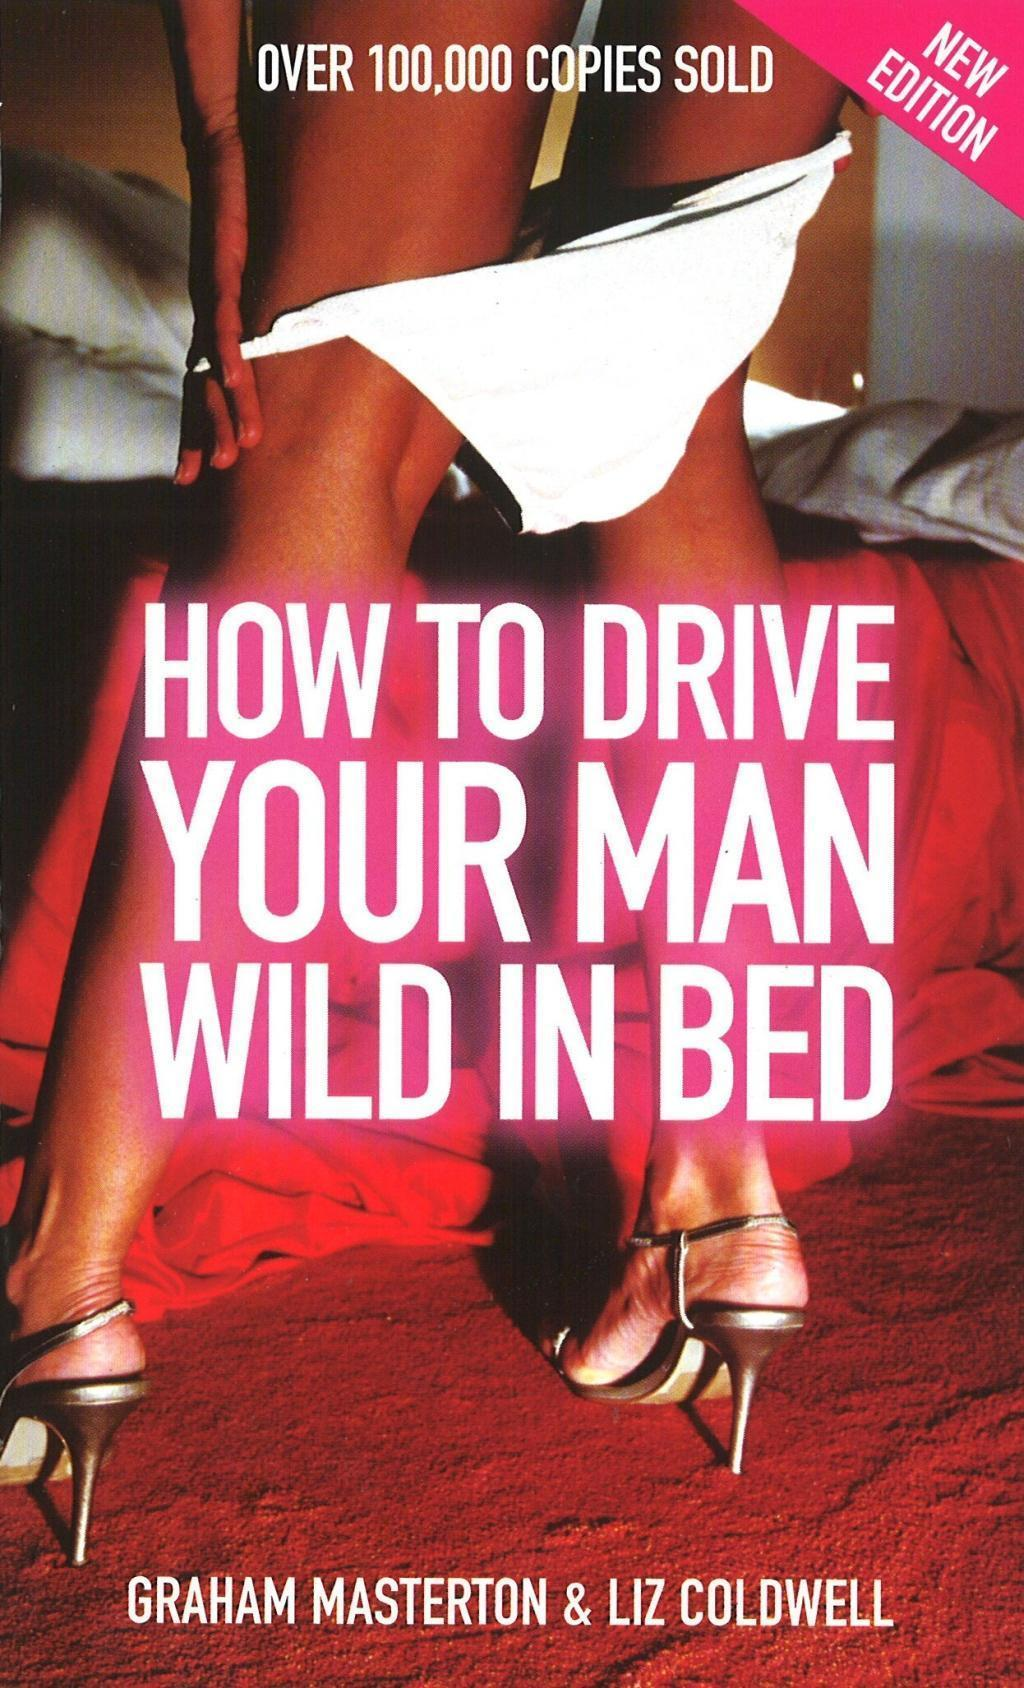 How To Drive Your Man Wild In Bed